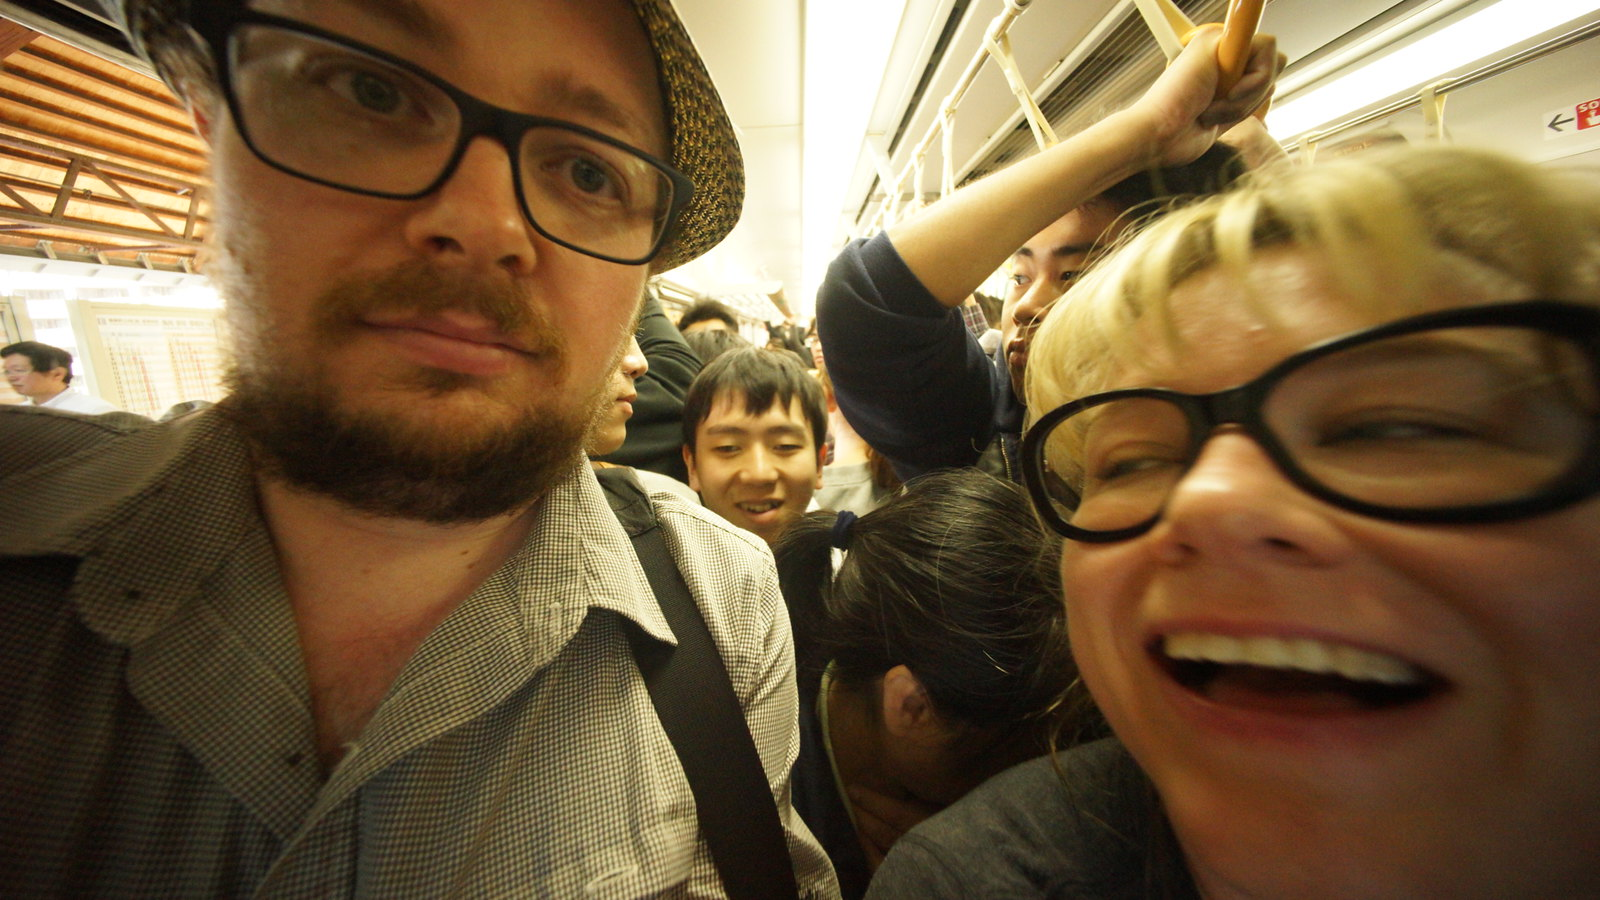 Things got a bit tight on the train ride home tonight. #Kyoto #japan15 #SonyA7 #foto #Voigtlander12mm #peakhour #SorryAmbre